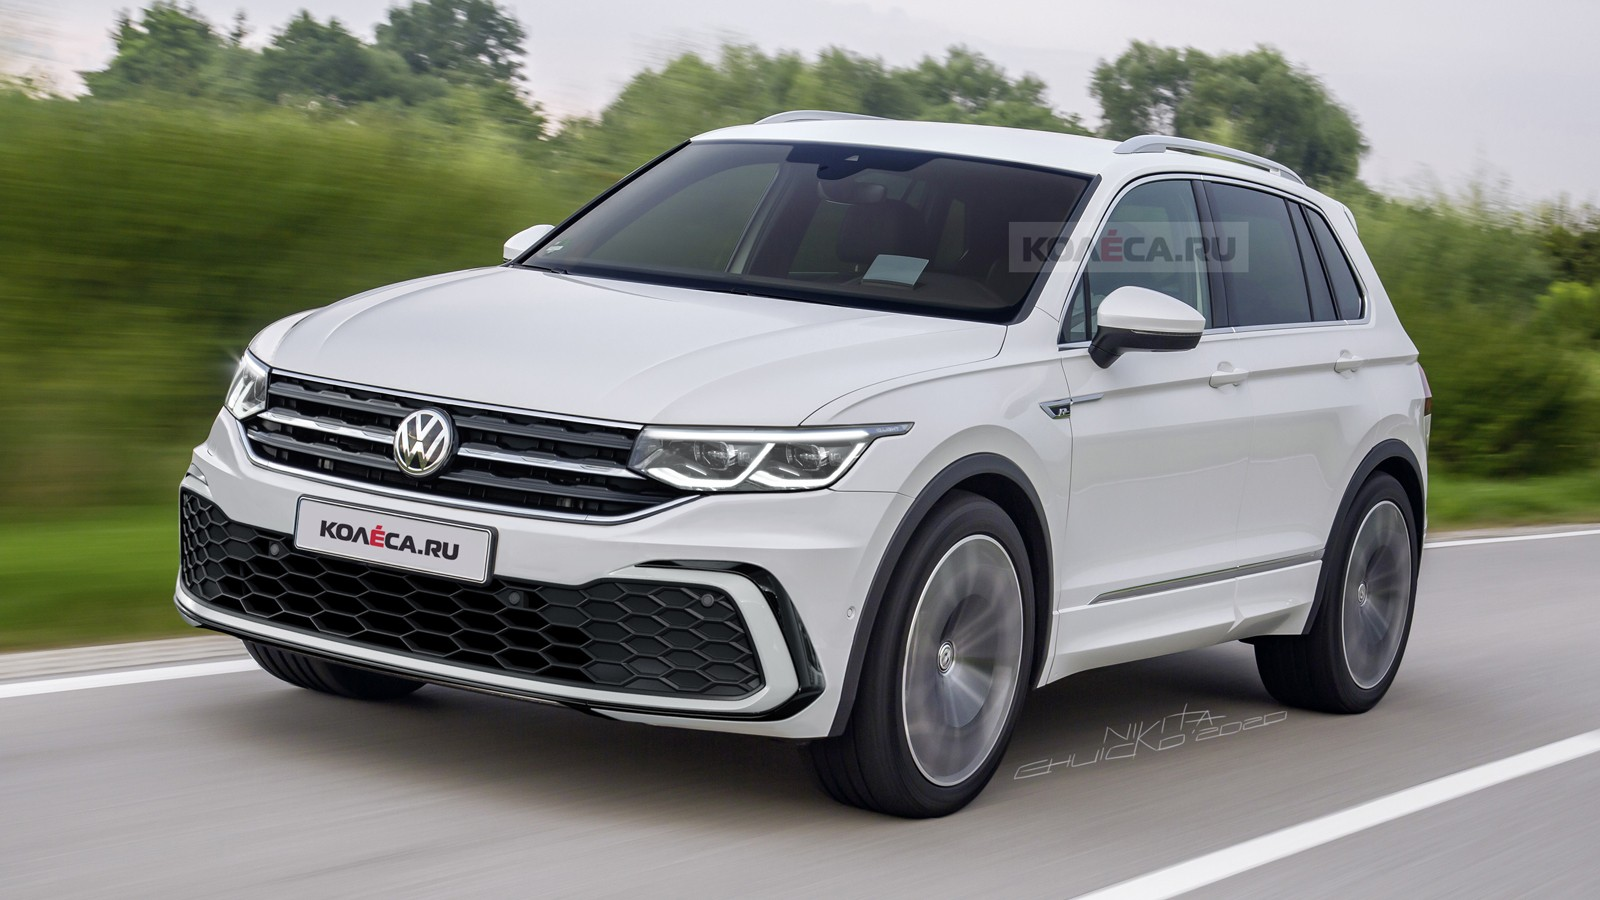 2021 volkswagen tiguan here's what it could look like